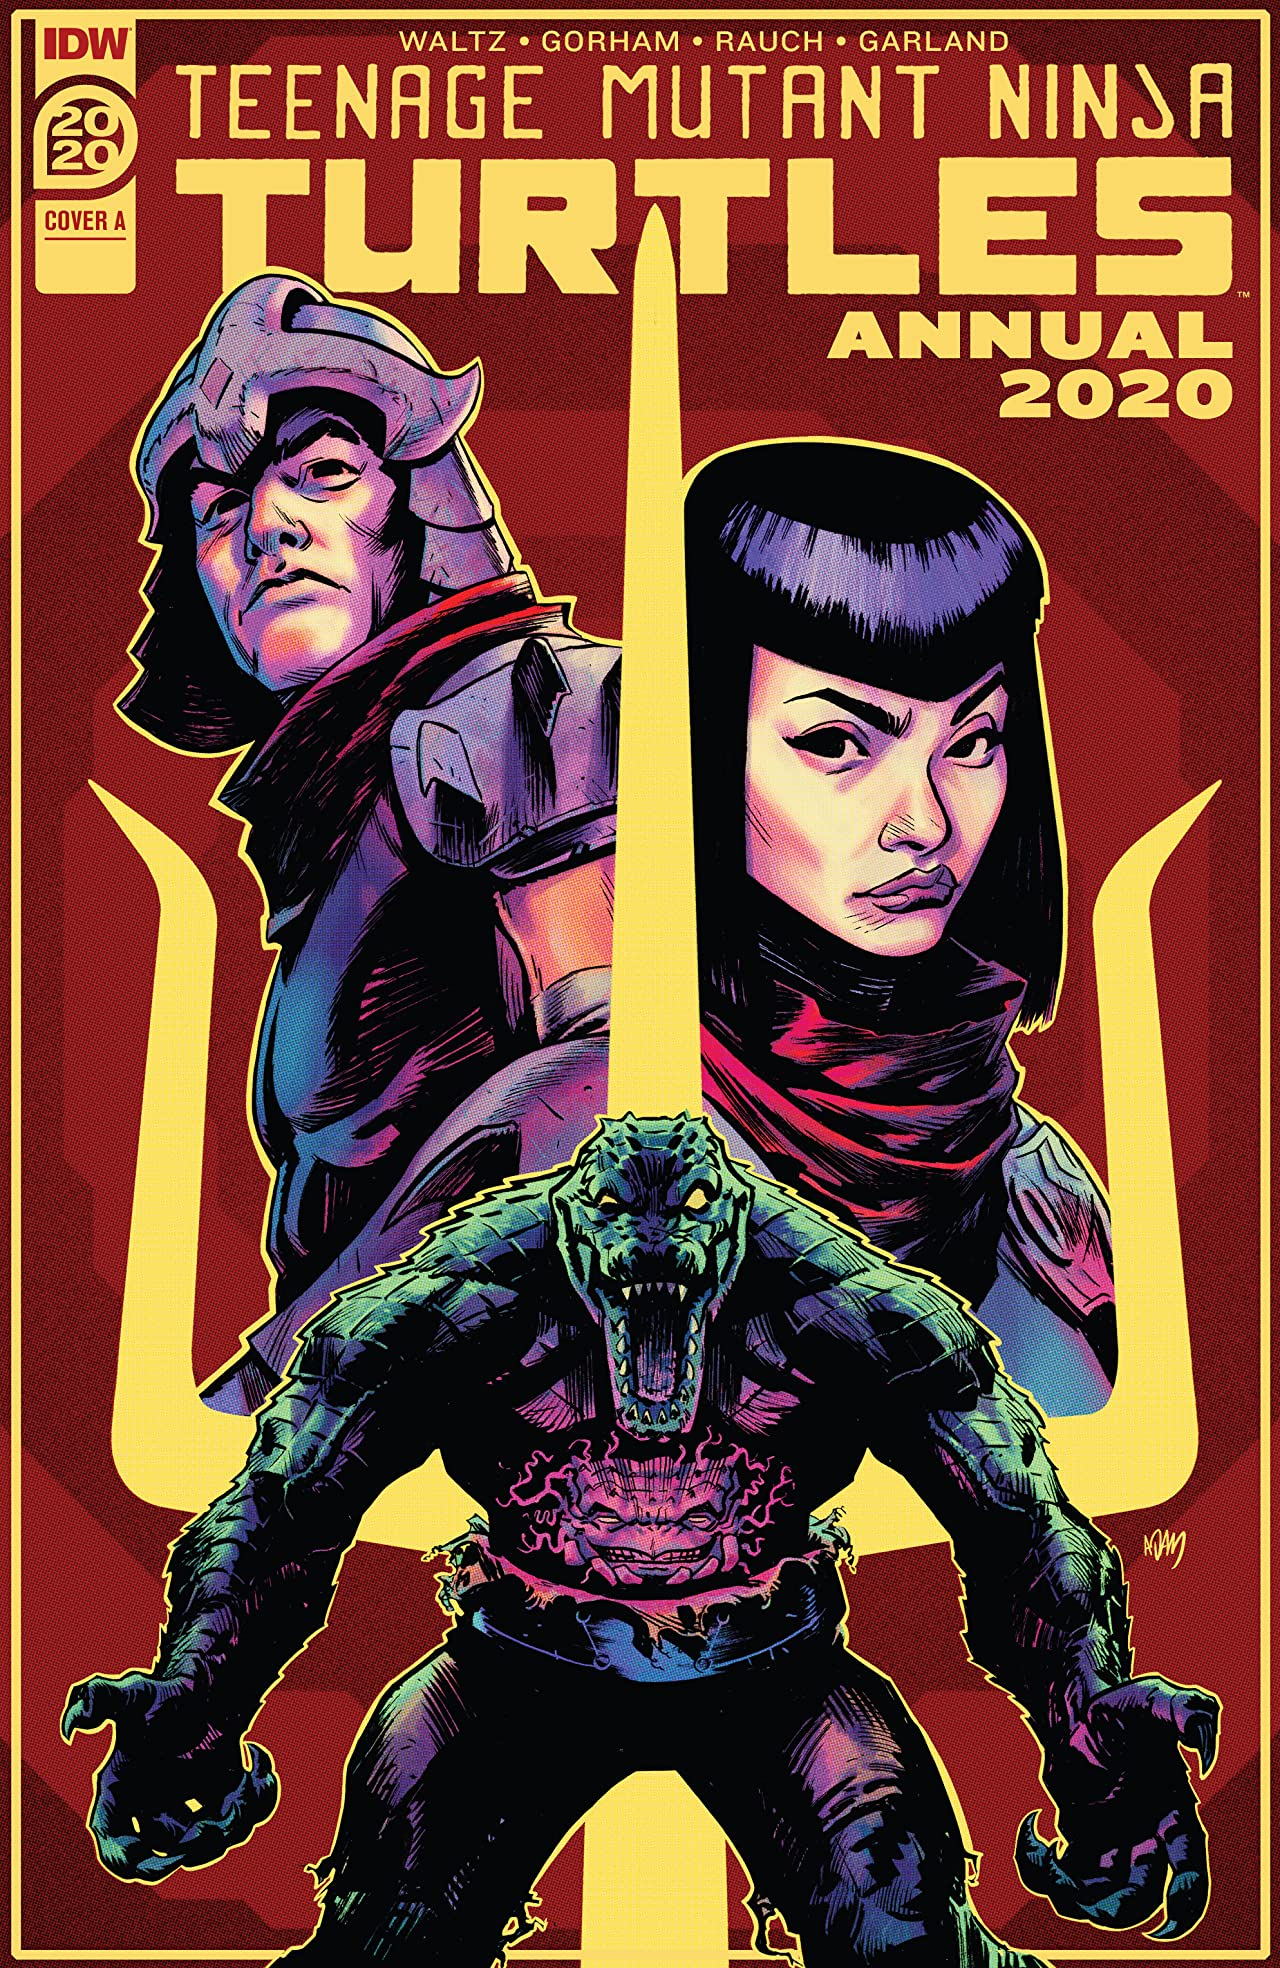 Teenage Mutant Ninja Turtles Annual 2020